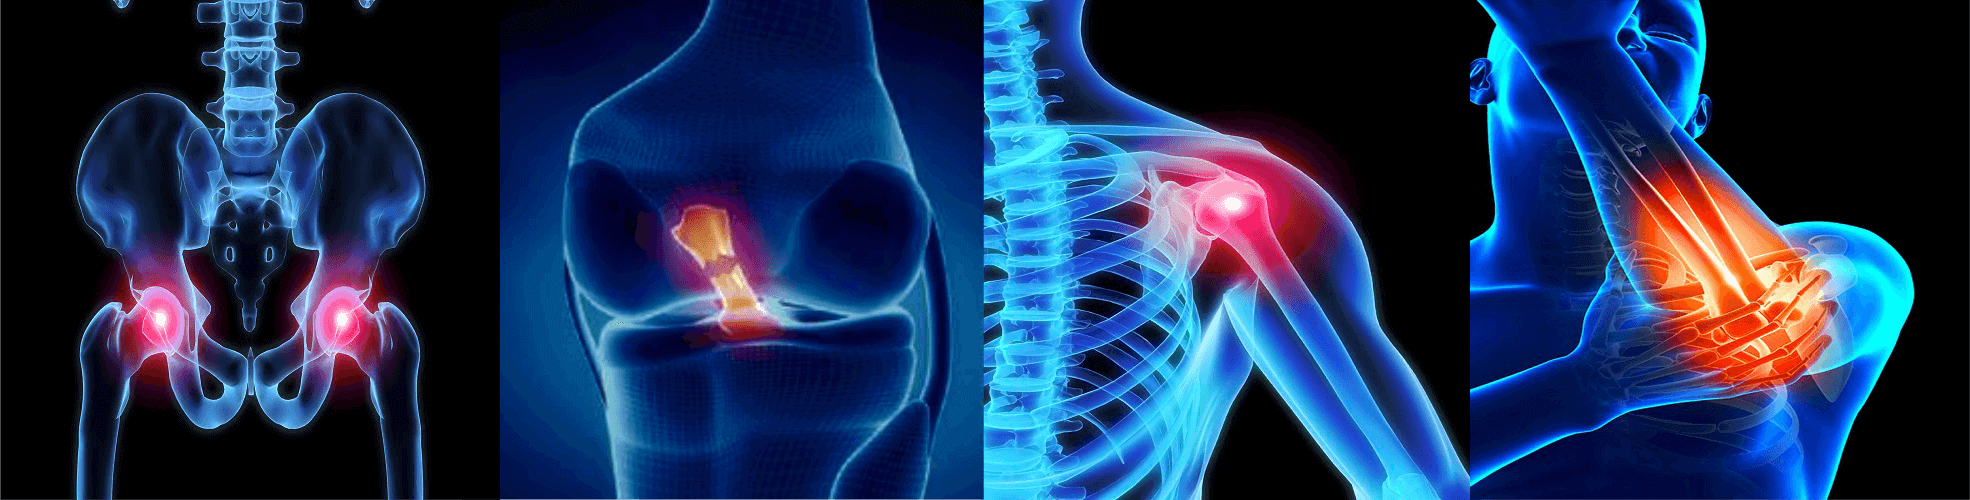 walk well joint replacement